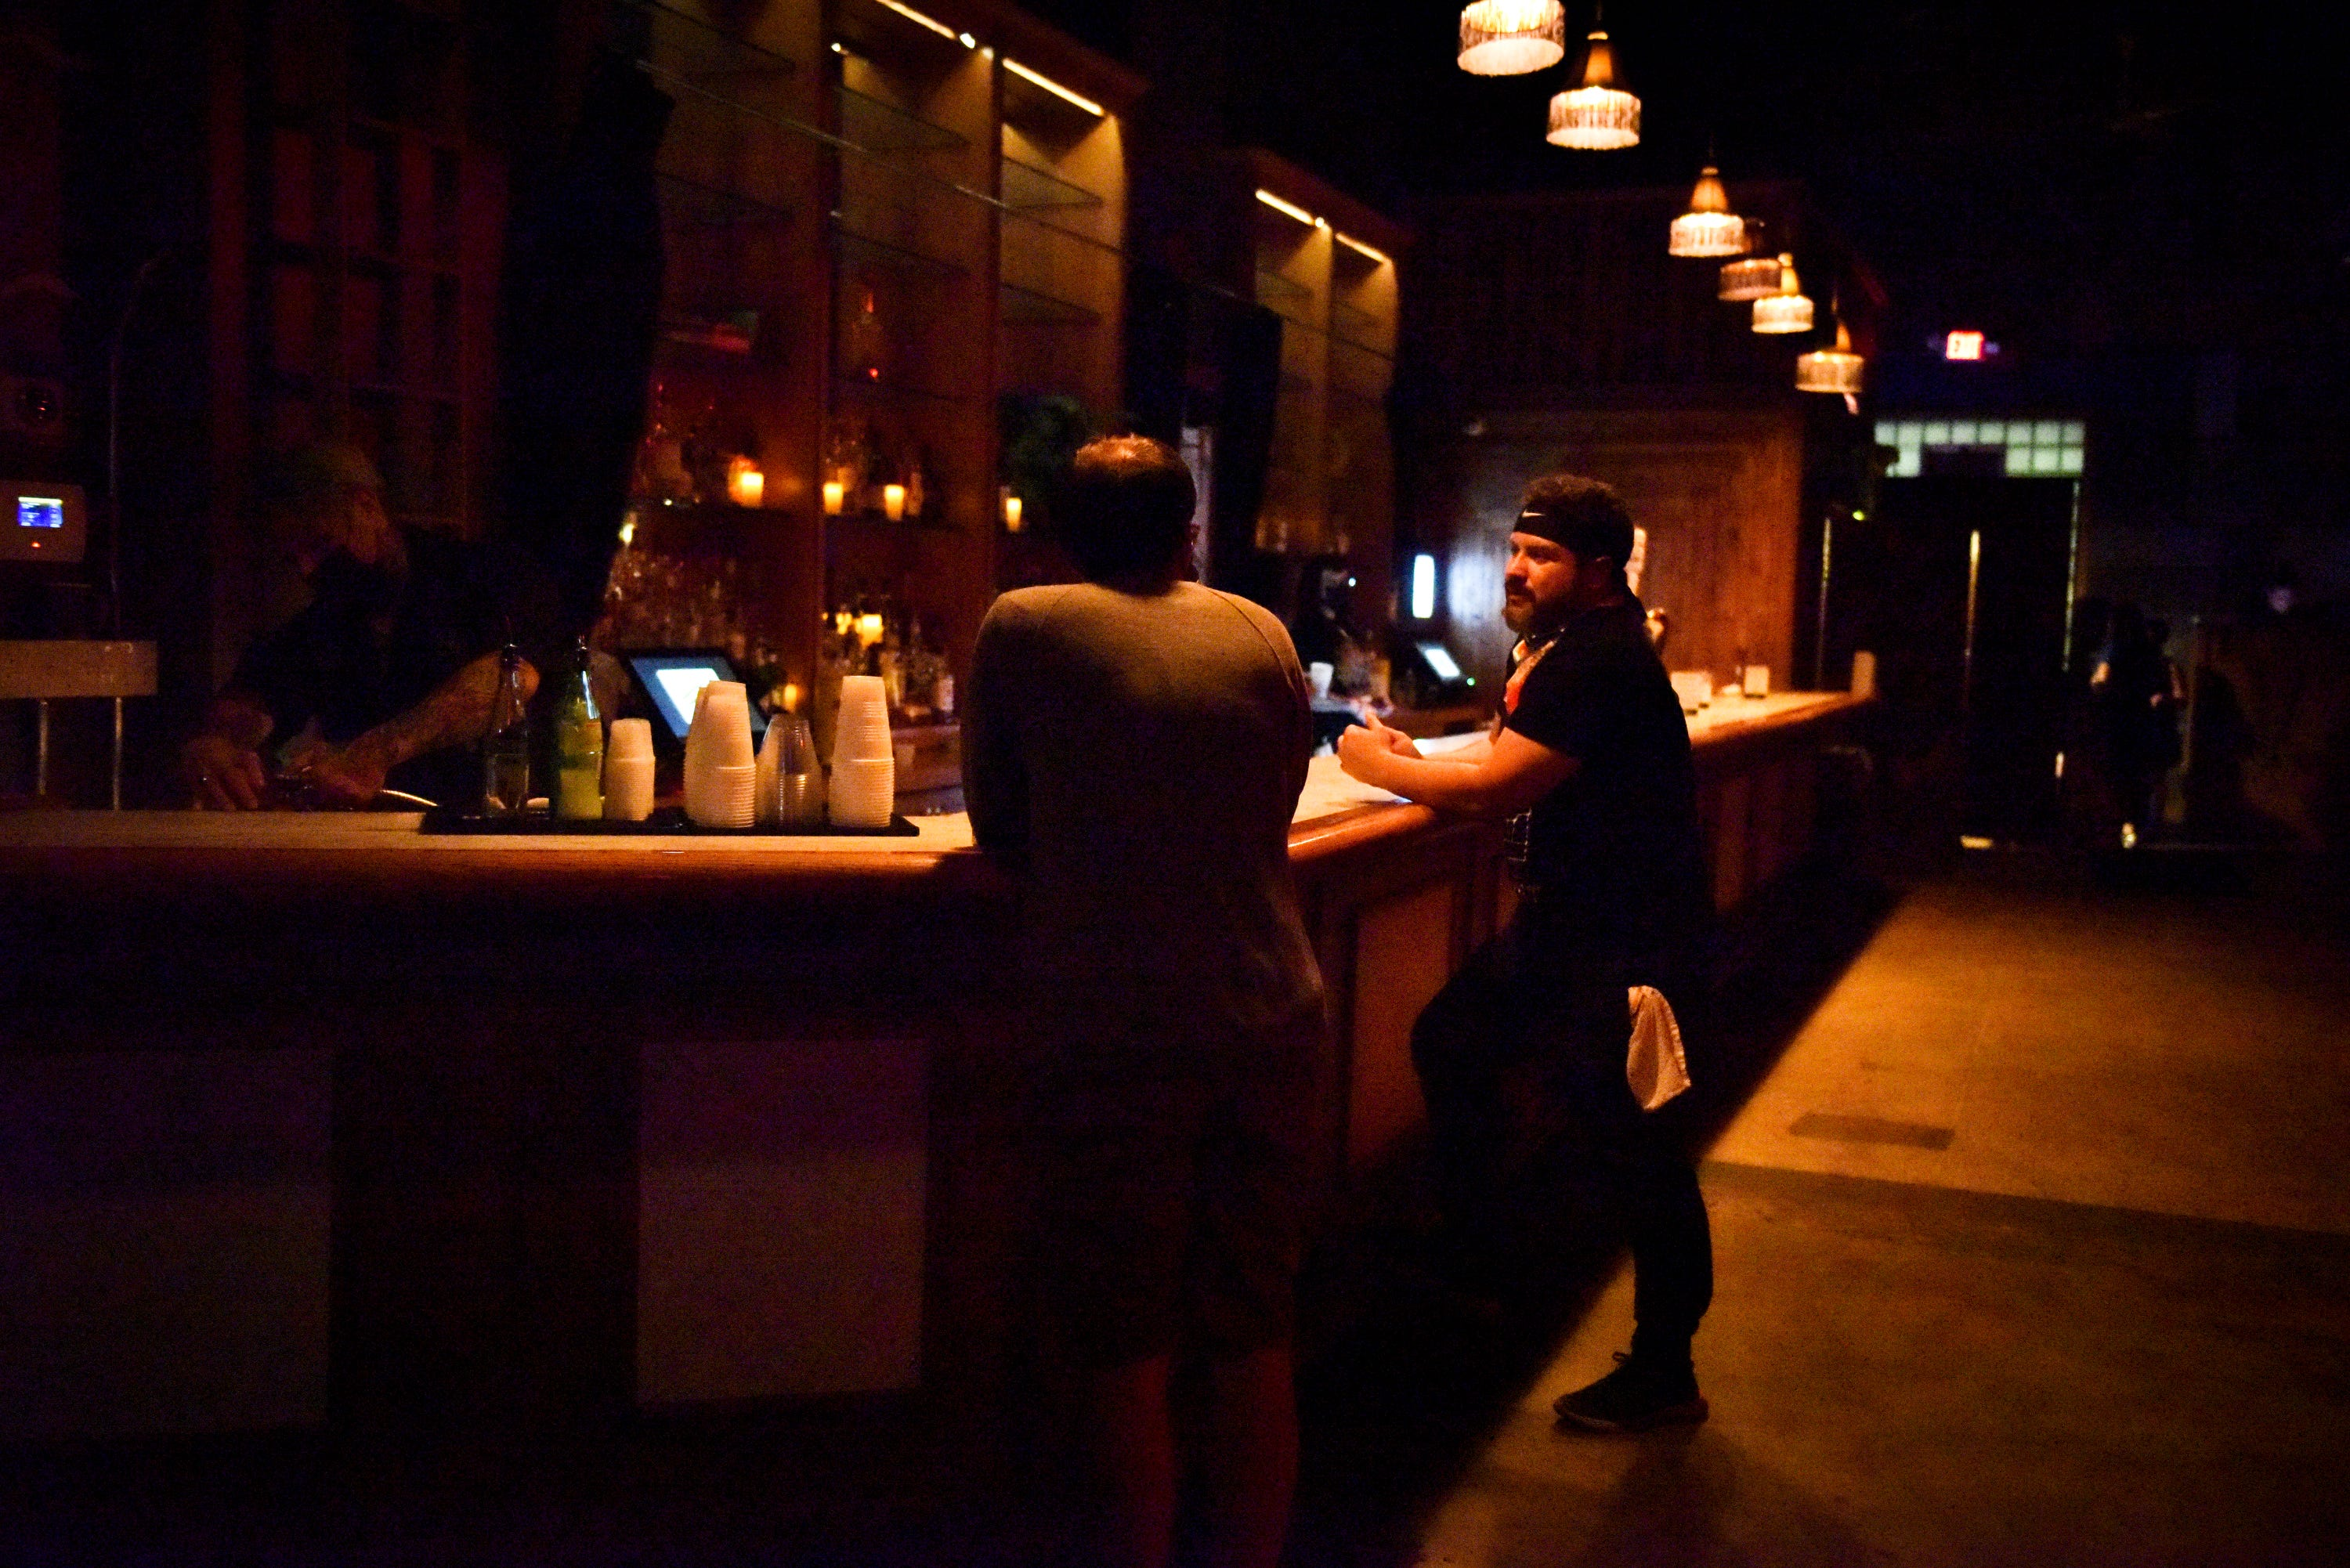 The Marble Bar in Detroit is slow to fill with customers on July 30, 2021, the first night it required patrons to show proof of vaccination or negative COVID-19 test results in order to be admitted into the venue. The emergence and spread of the Delta Variant was cited as the reason for the additional safety measures.